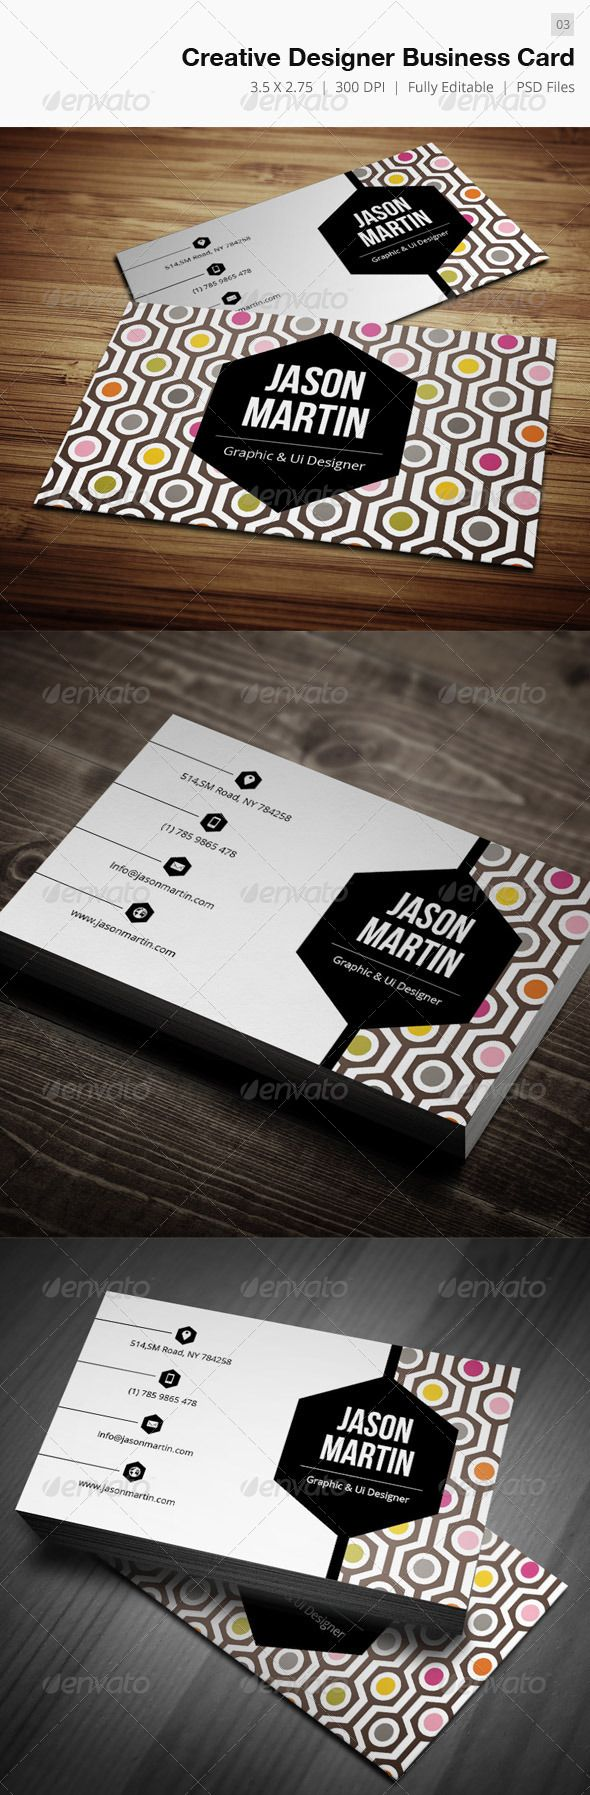 A nice use of contrasting geometric shapes with the hexagons and circles. It is certainly bold, but not overwhelming. I think it's because of the lightly muted colors. I'm assuming the designer is Jason Martin on the card. #design #stationery